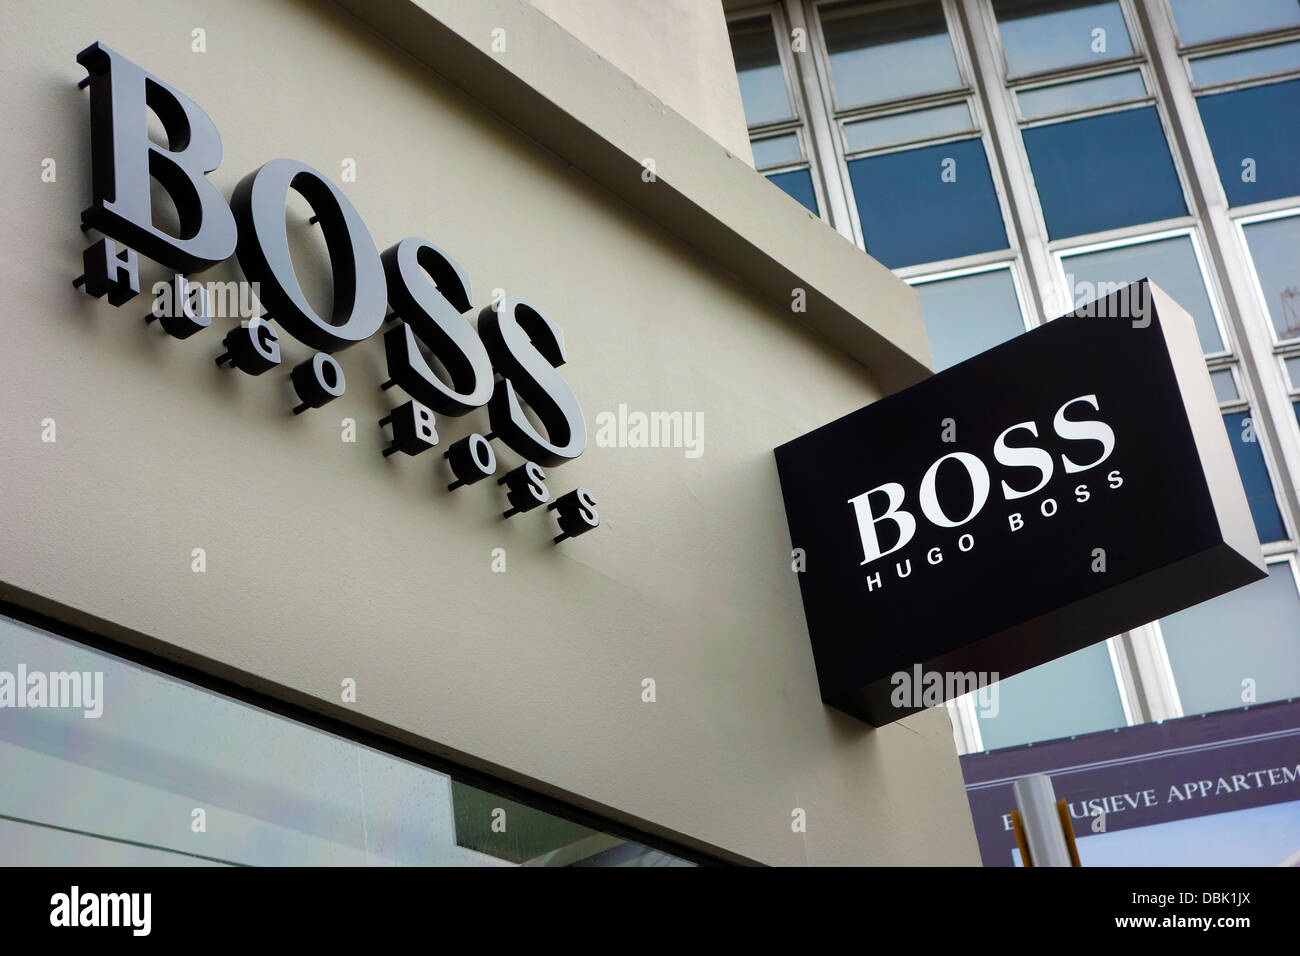 Sign showing brand logo of the fashion clothing retail store Hugo Boss - Stock Image